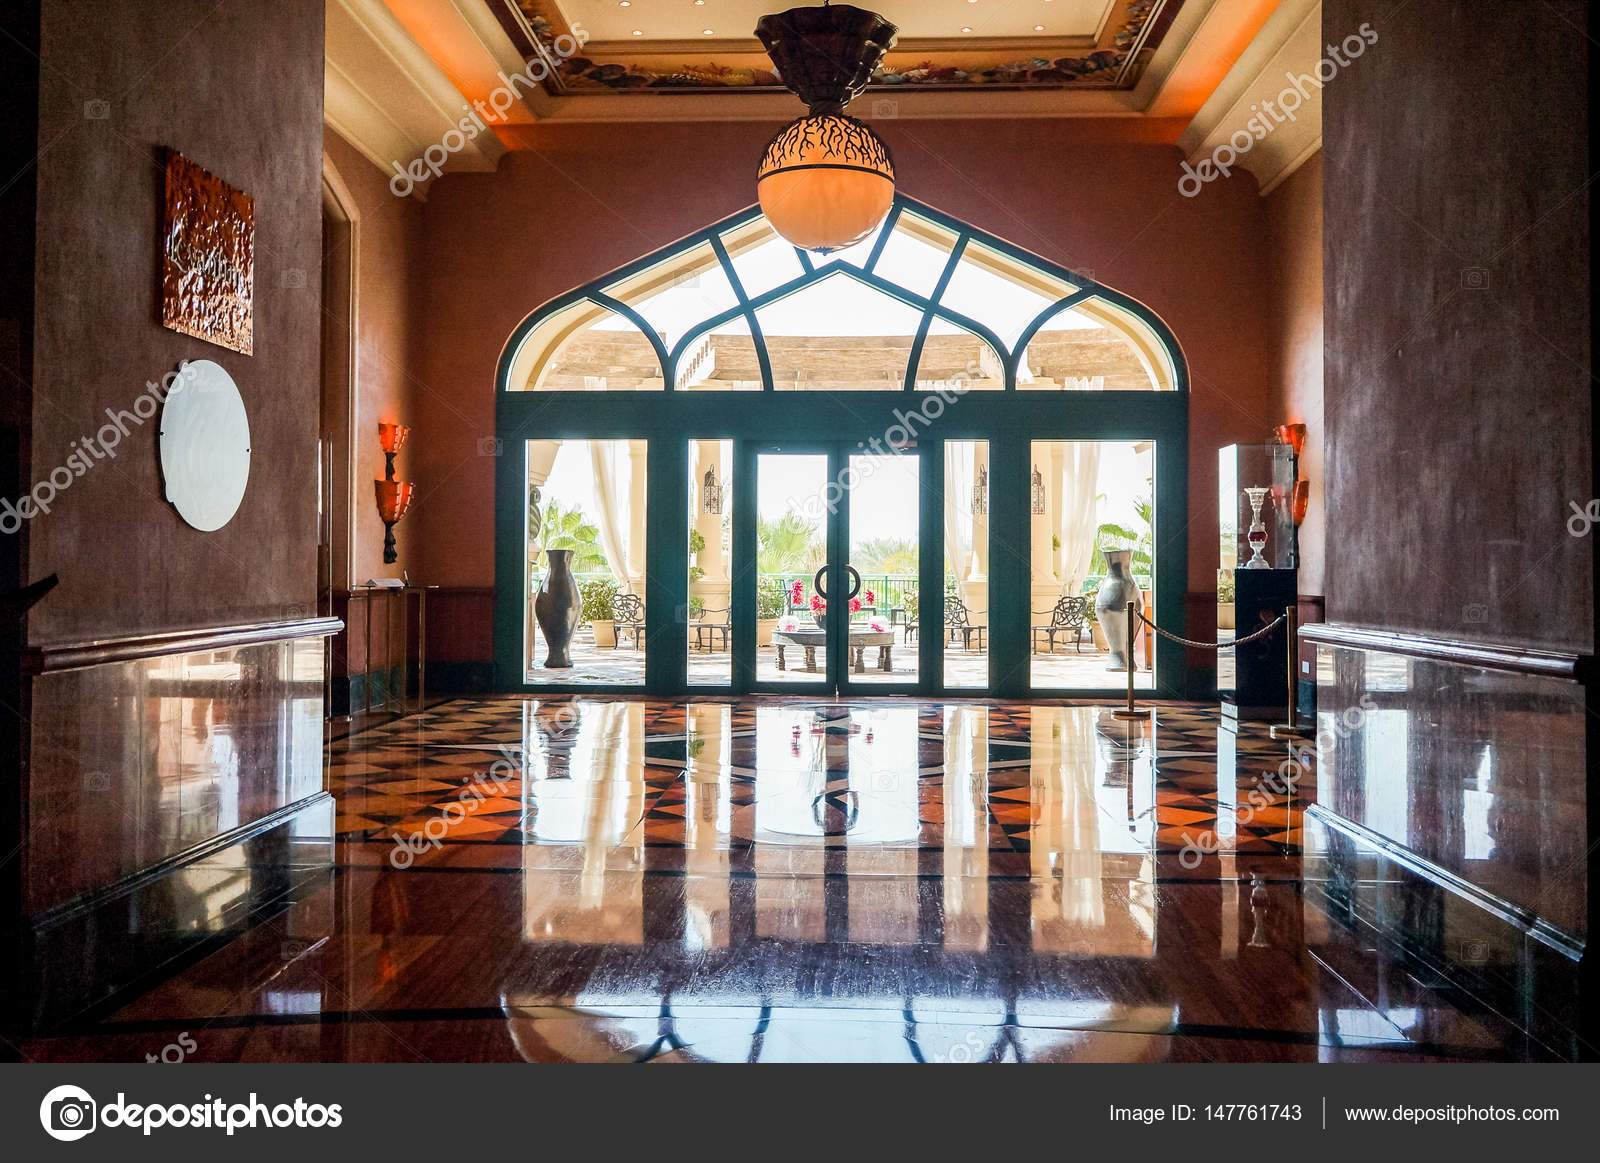 bright orange color in the interior with marble floor of the hotel photo by sablinstanislav